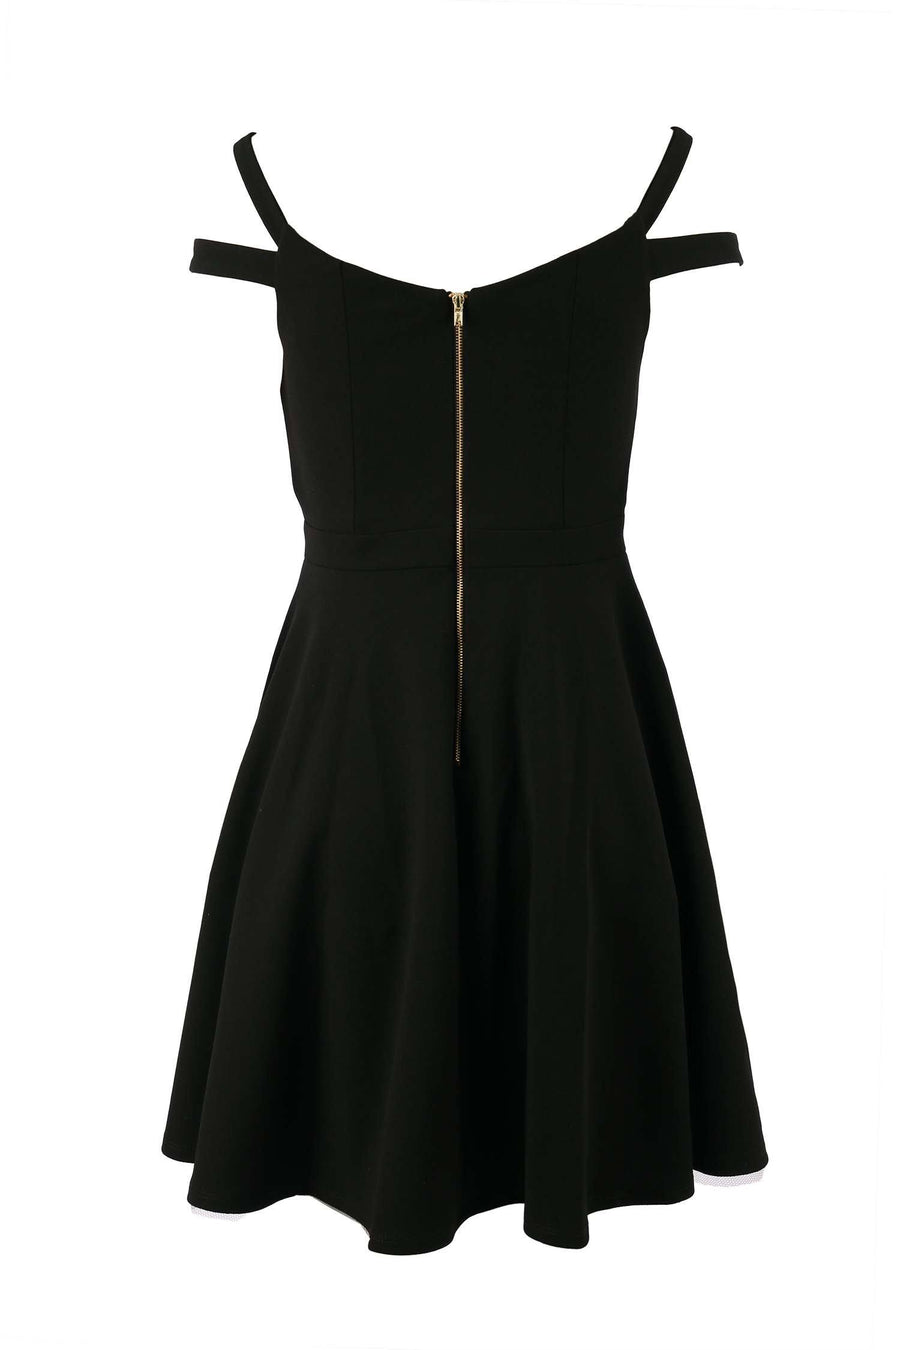 Tyler V-neck Dress in Black